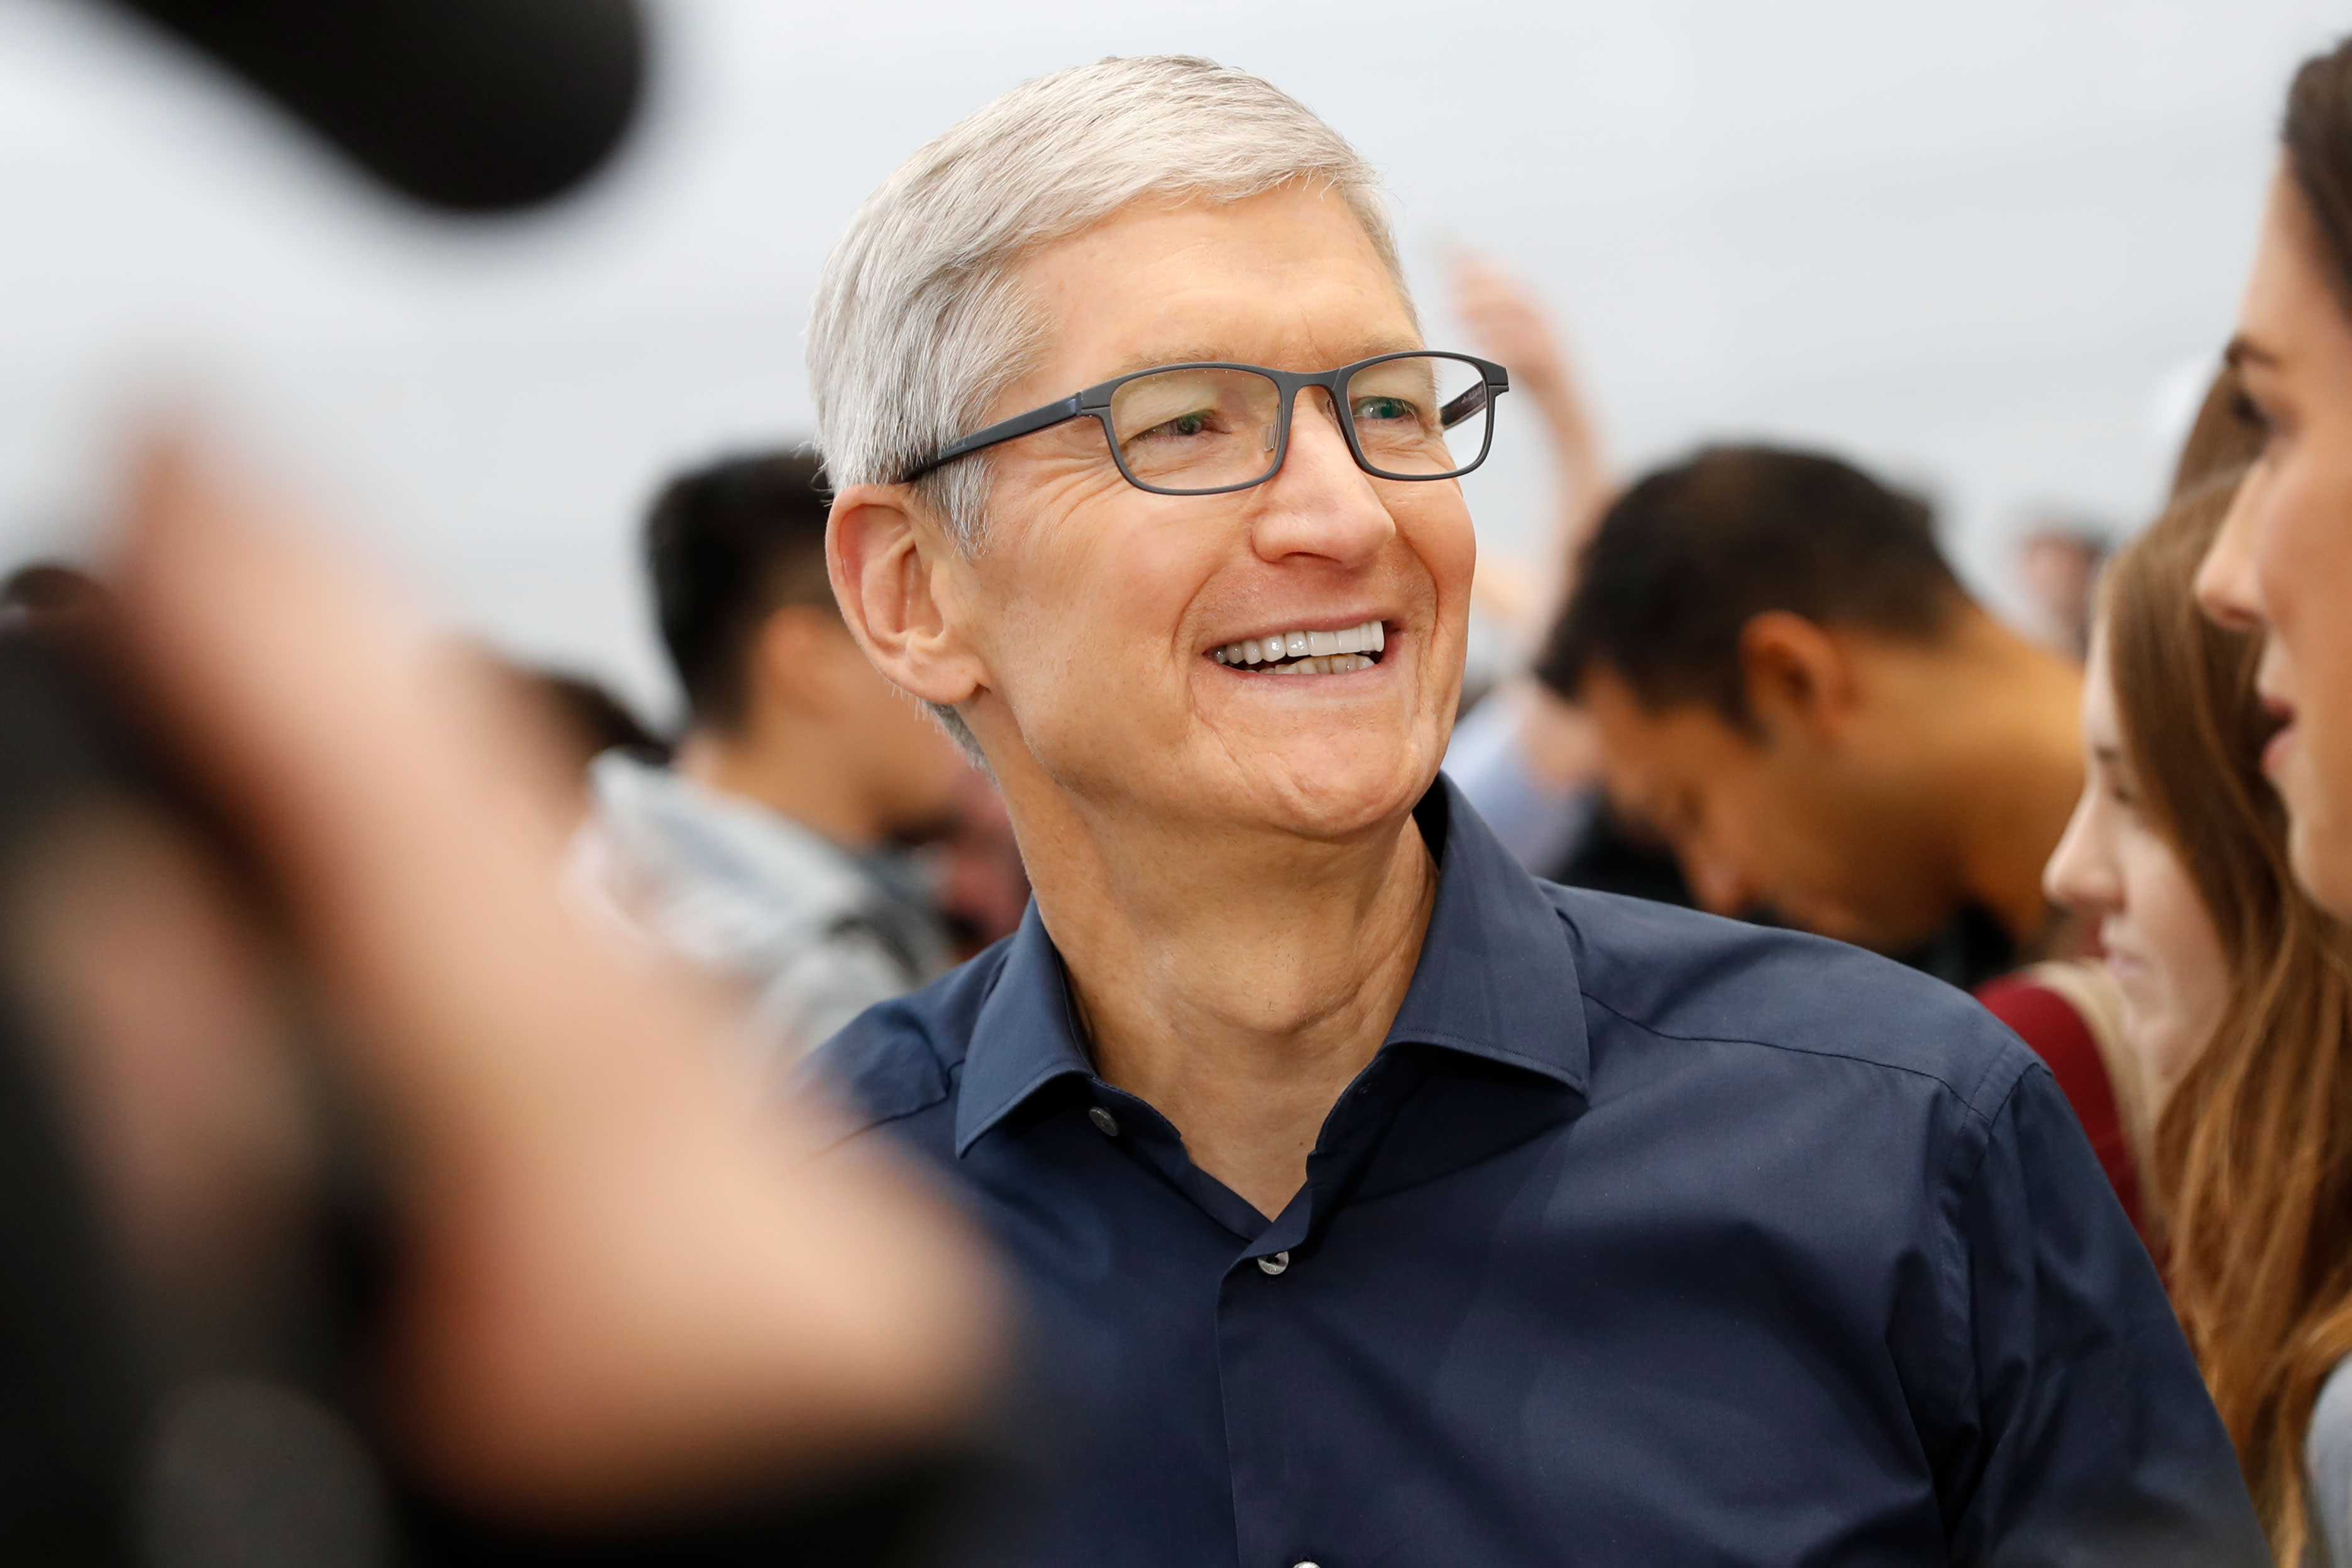 Apple CEO Tim Cook explains why Apple products were exempt from Trump's China tariffs